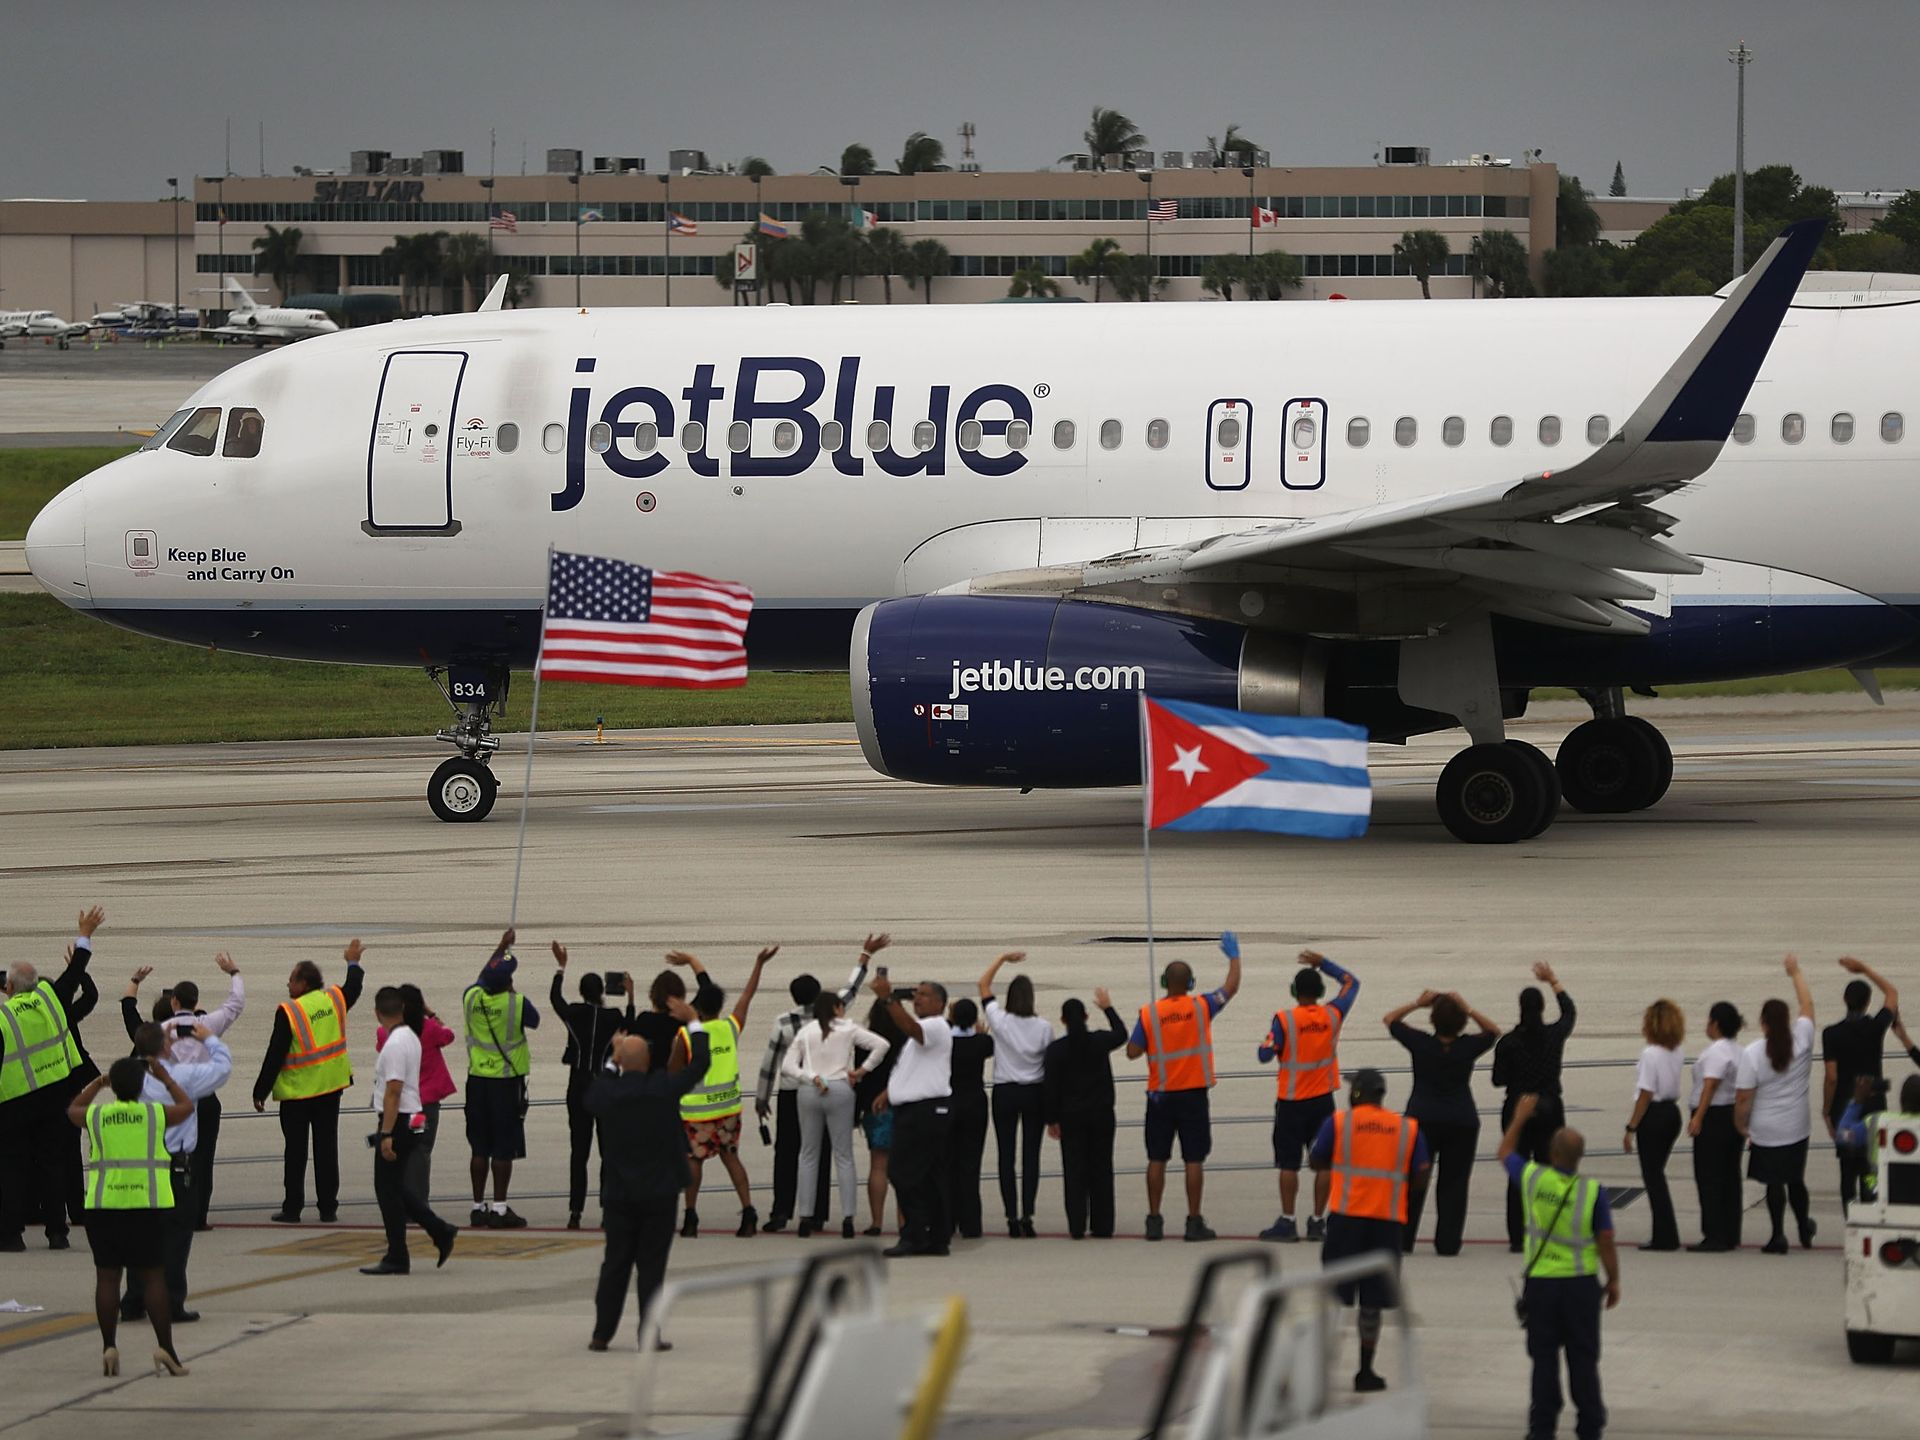 First U.S. commercial flight to Cuba since 1961. Photo by USA Today.